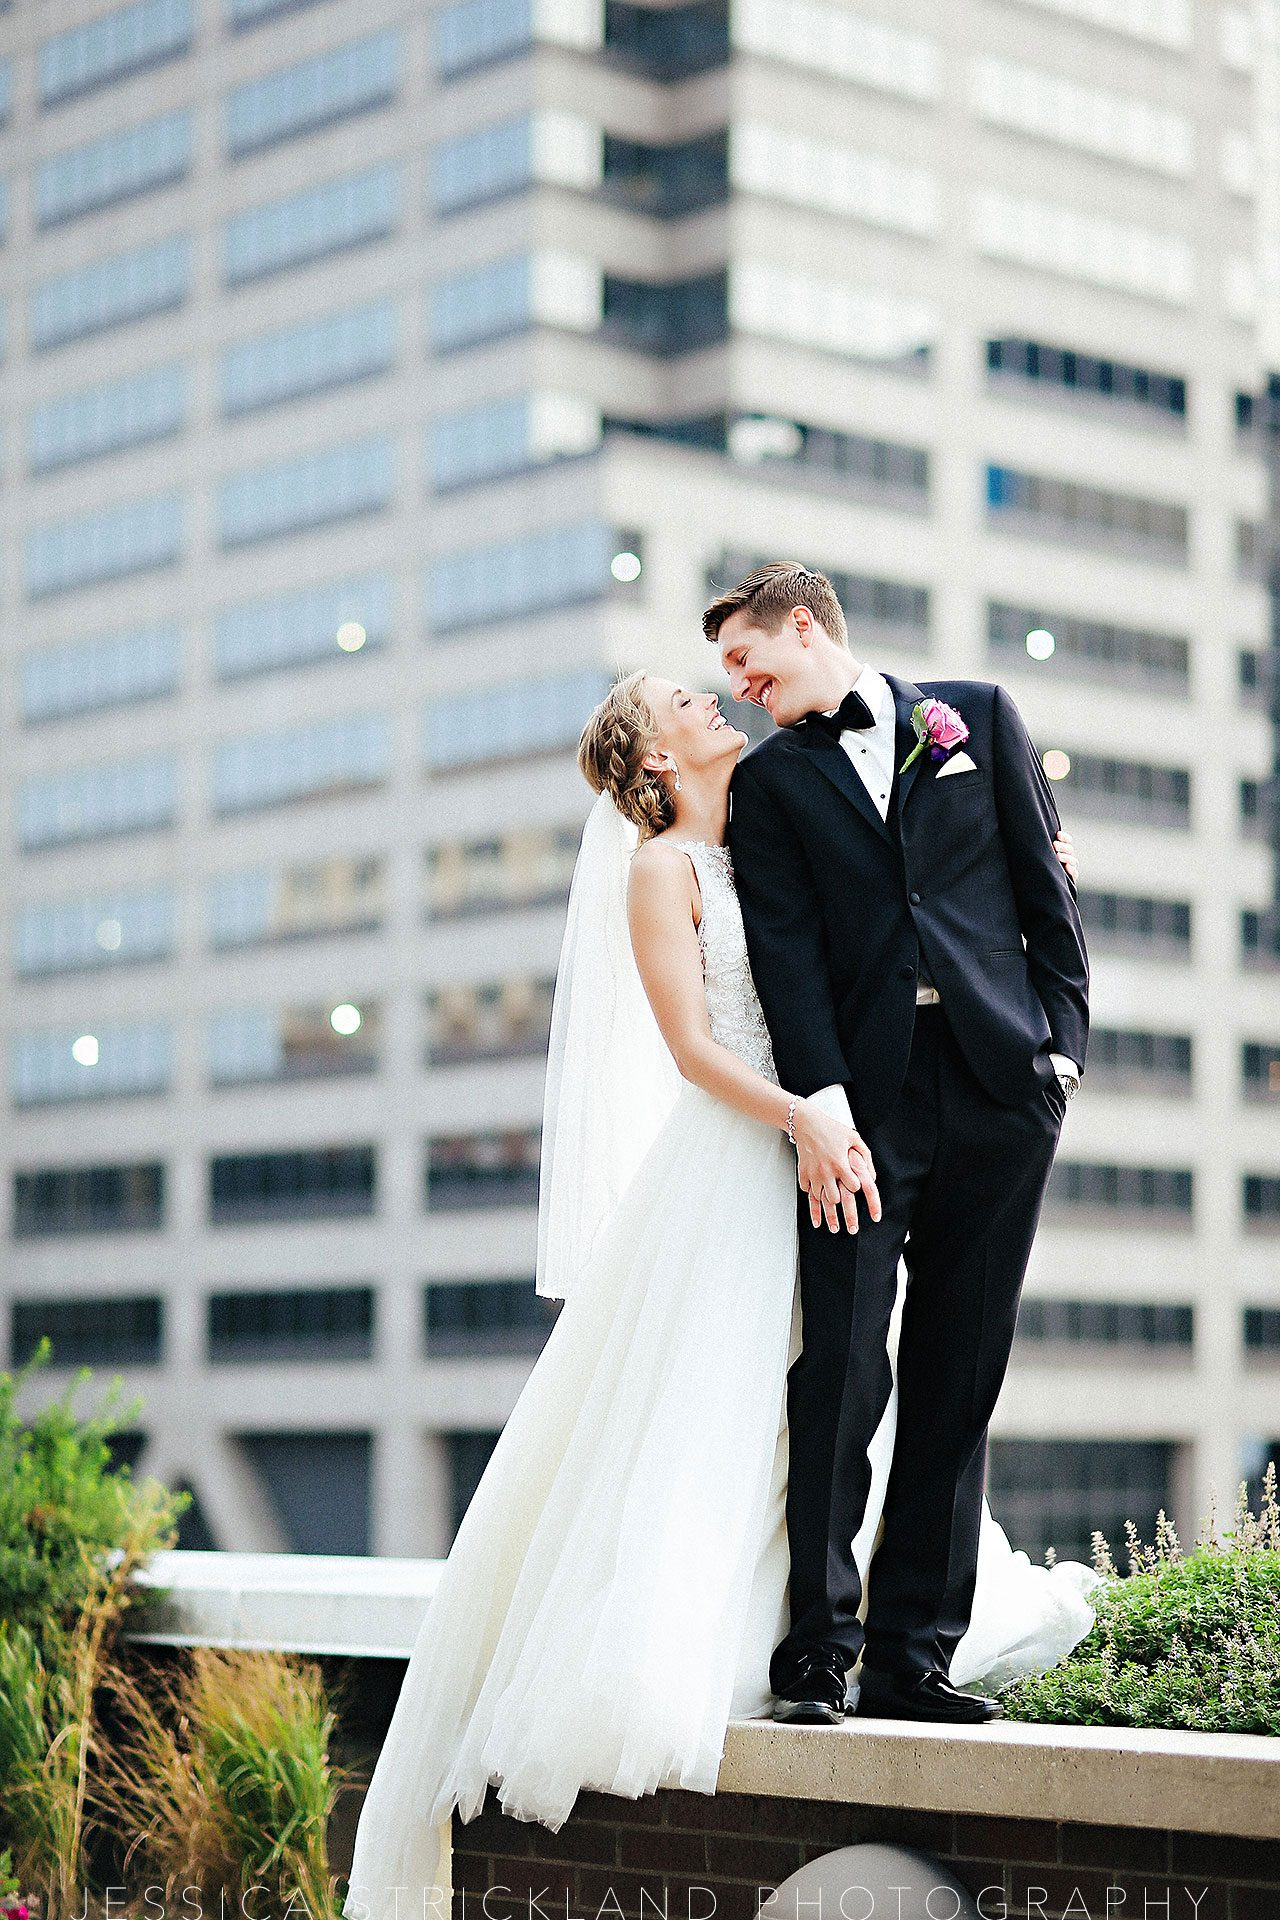 Serra Alex Regions Tower Indianapolis Wedding 236 watermarked